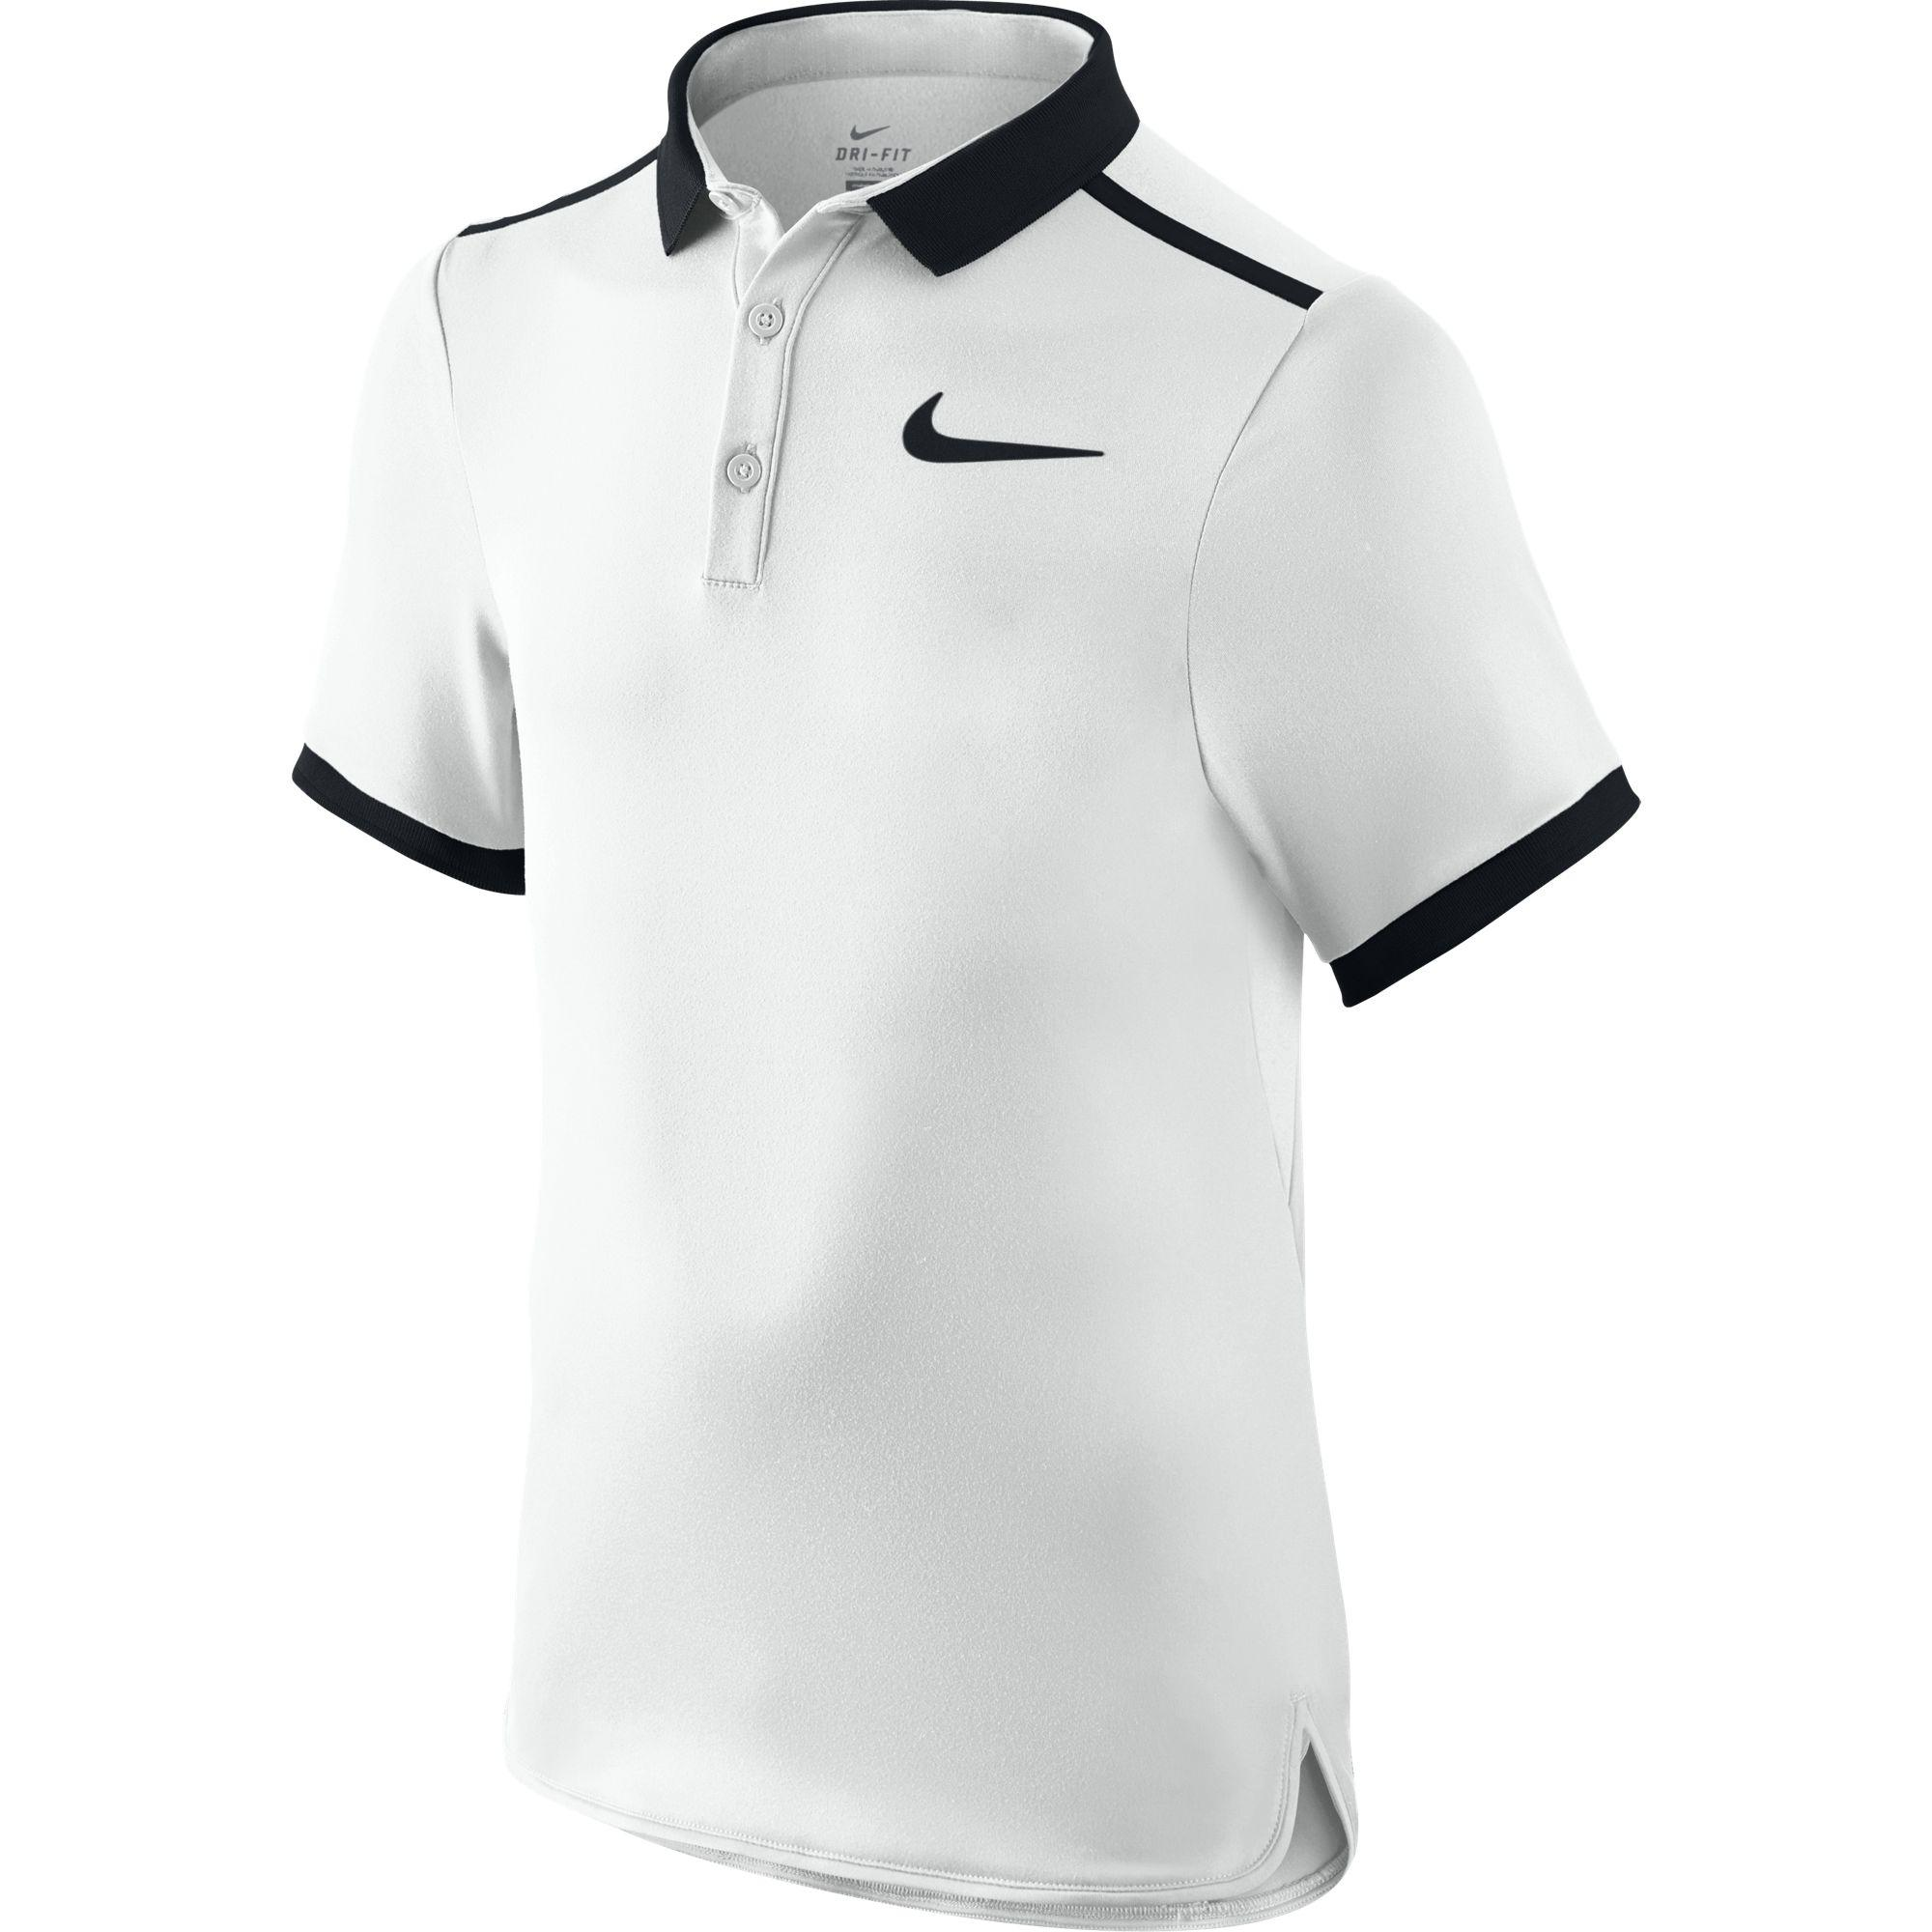 f94bd8aa Nike Boys Advantage Solid Polo - White/Black - Tennisnuts.com